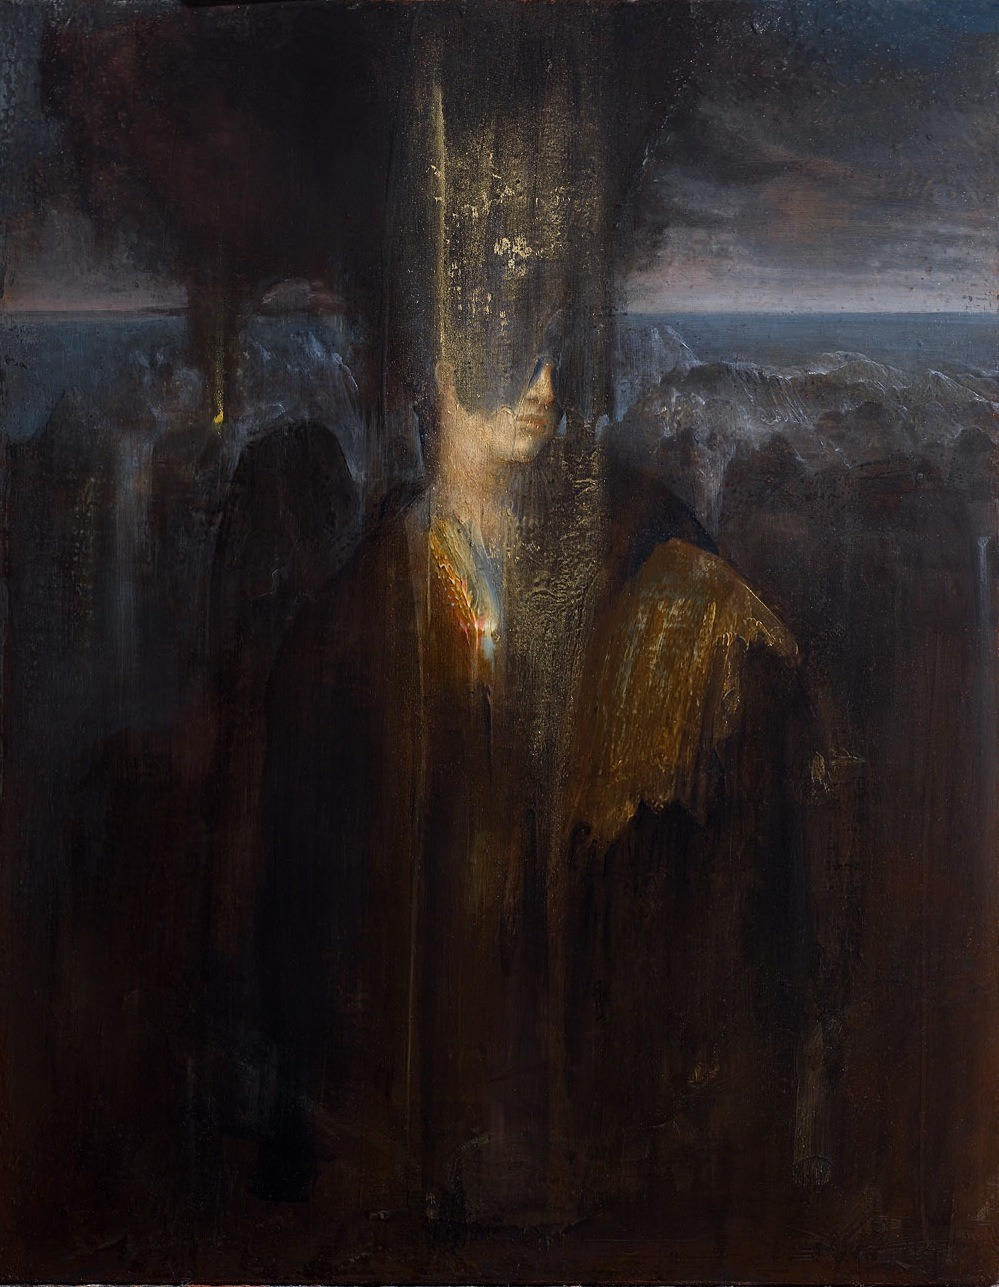 Agostino Arrivabene - Pizia, 2012          Paintings: Oil, Gold Leaf on Wood